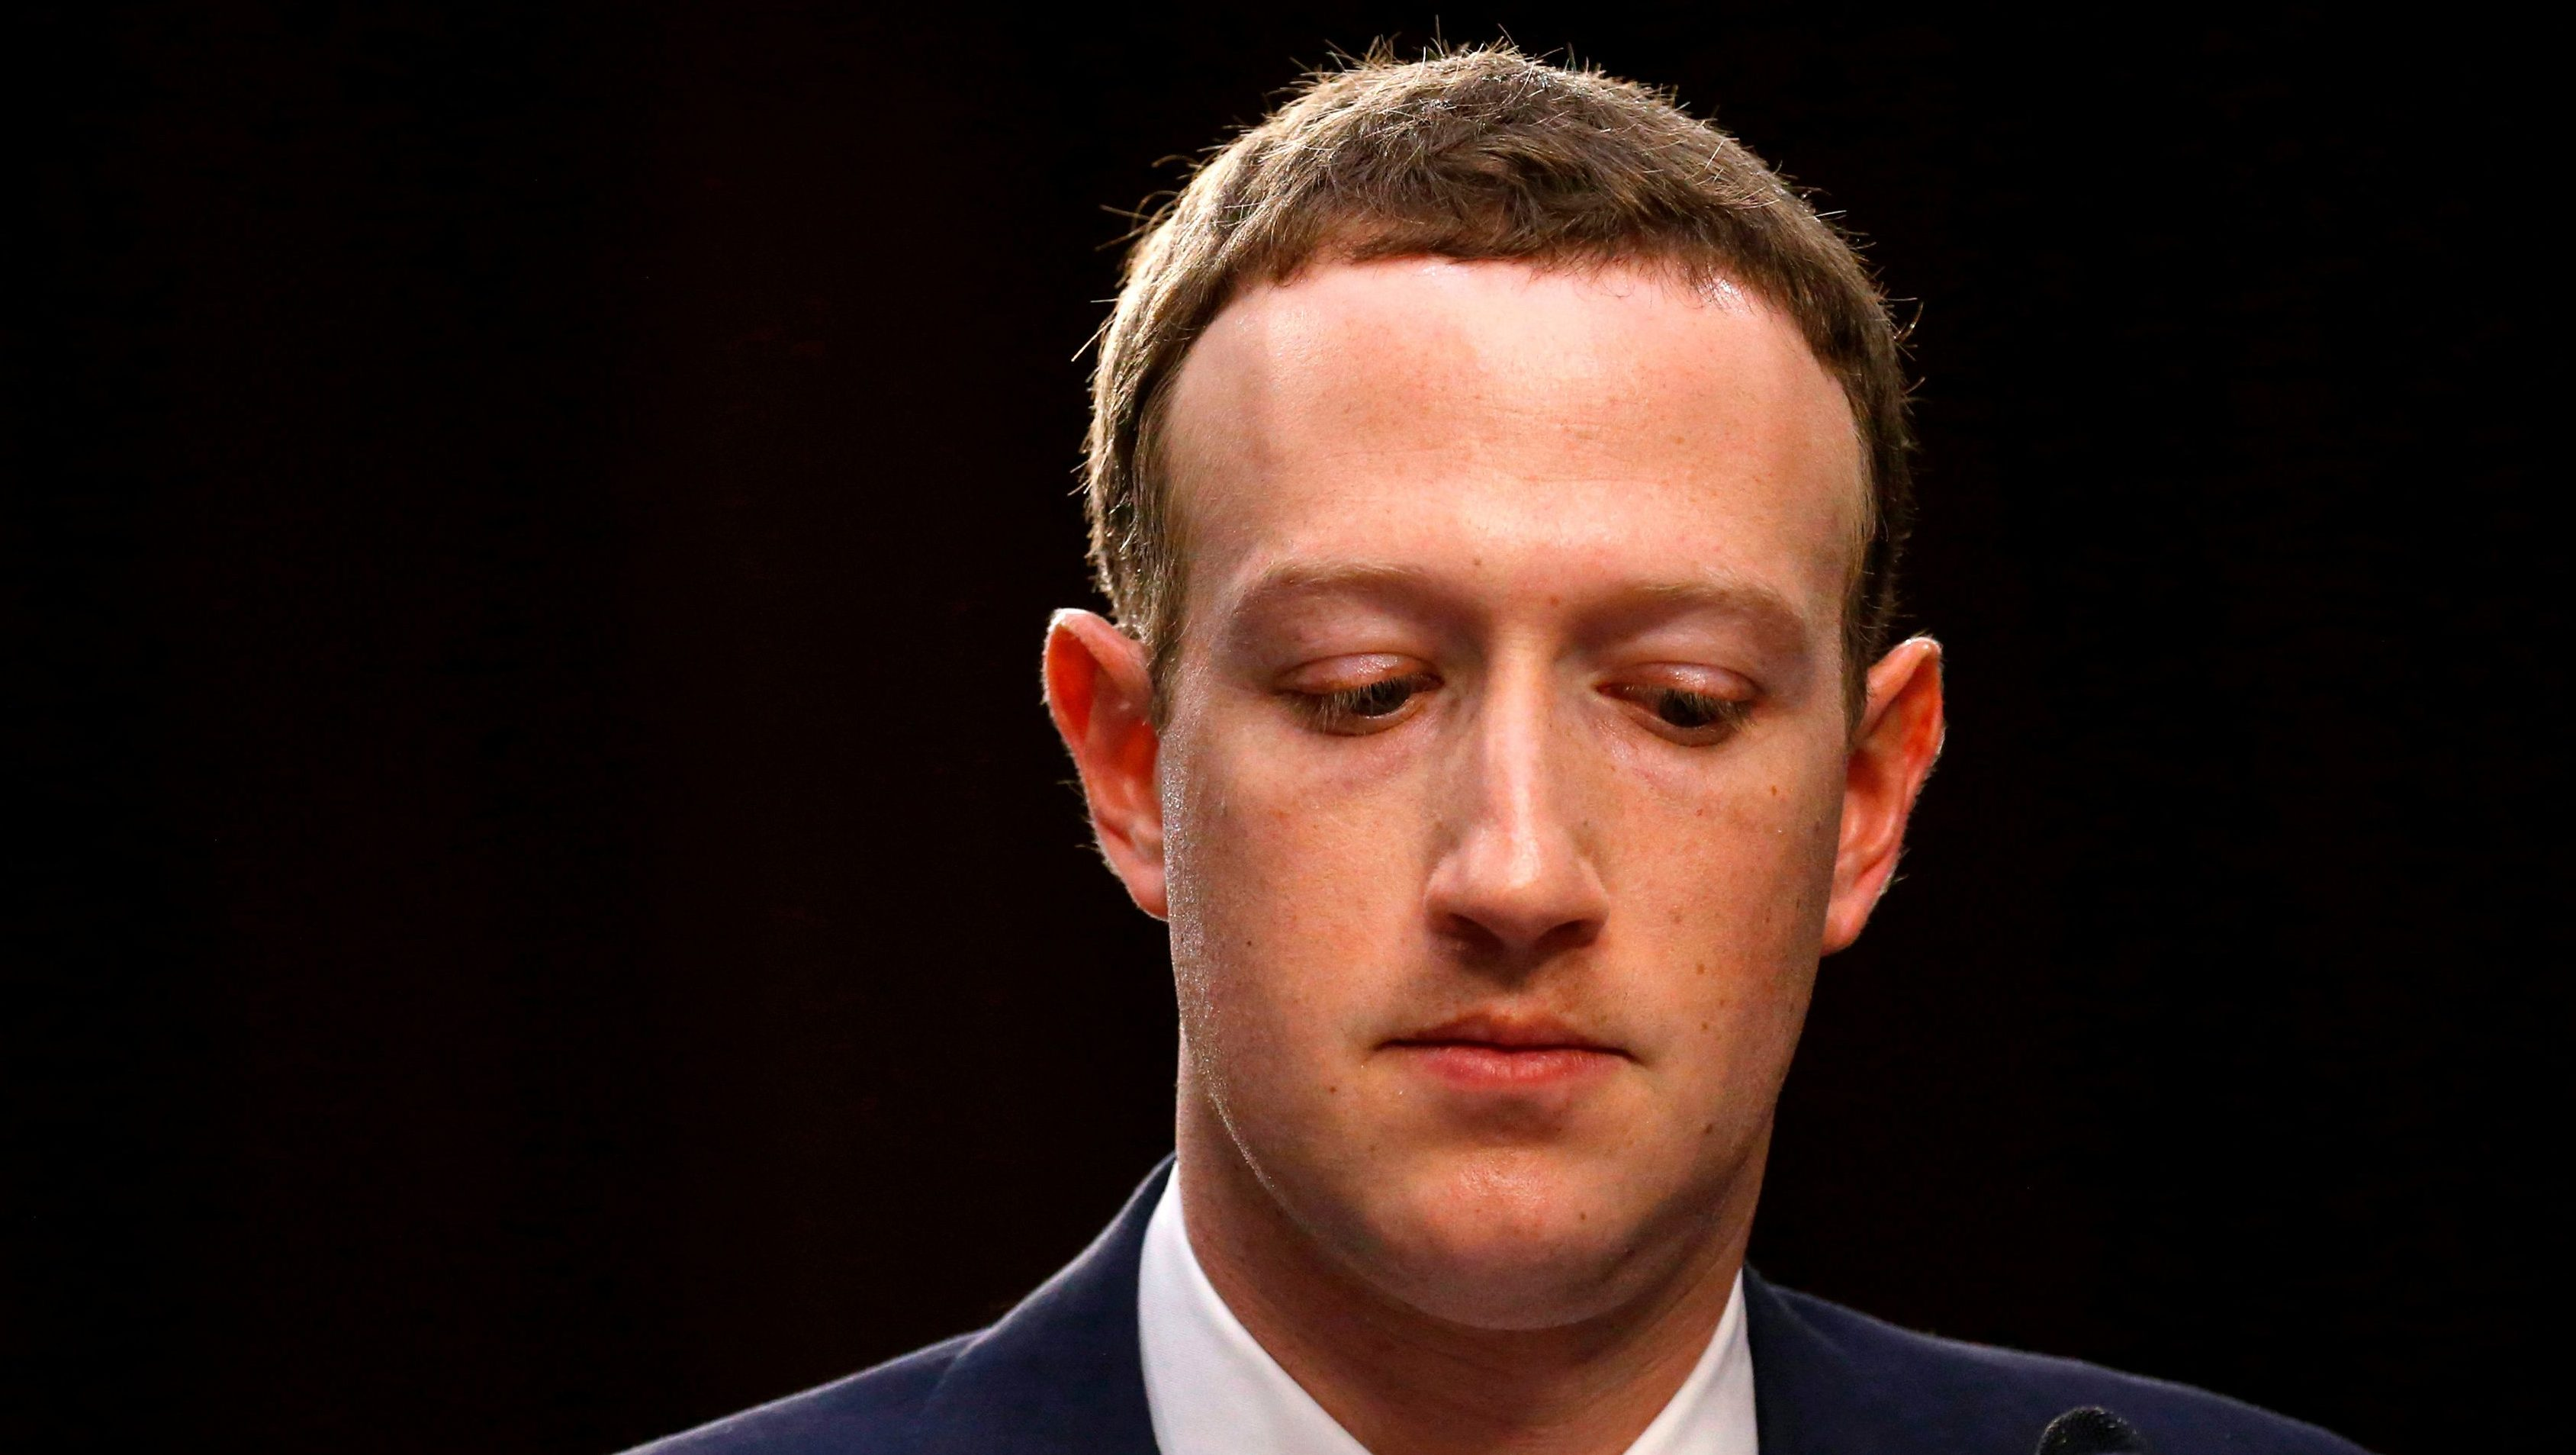 FILE PHOTO: Facebook CEO Mark Zuckerberg listens while testifying before a joint Senate Judiciary and Commerce Committees hearing regarding the company's use and protection of user data, on Capitol Hill in Washington, U.S., April 10, 2018. Picture taken April 10, 2018.  REUTERS/Leah Millis/File Photo - RC12536B96A0